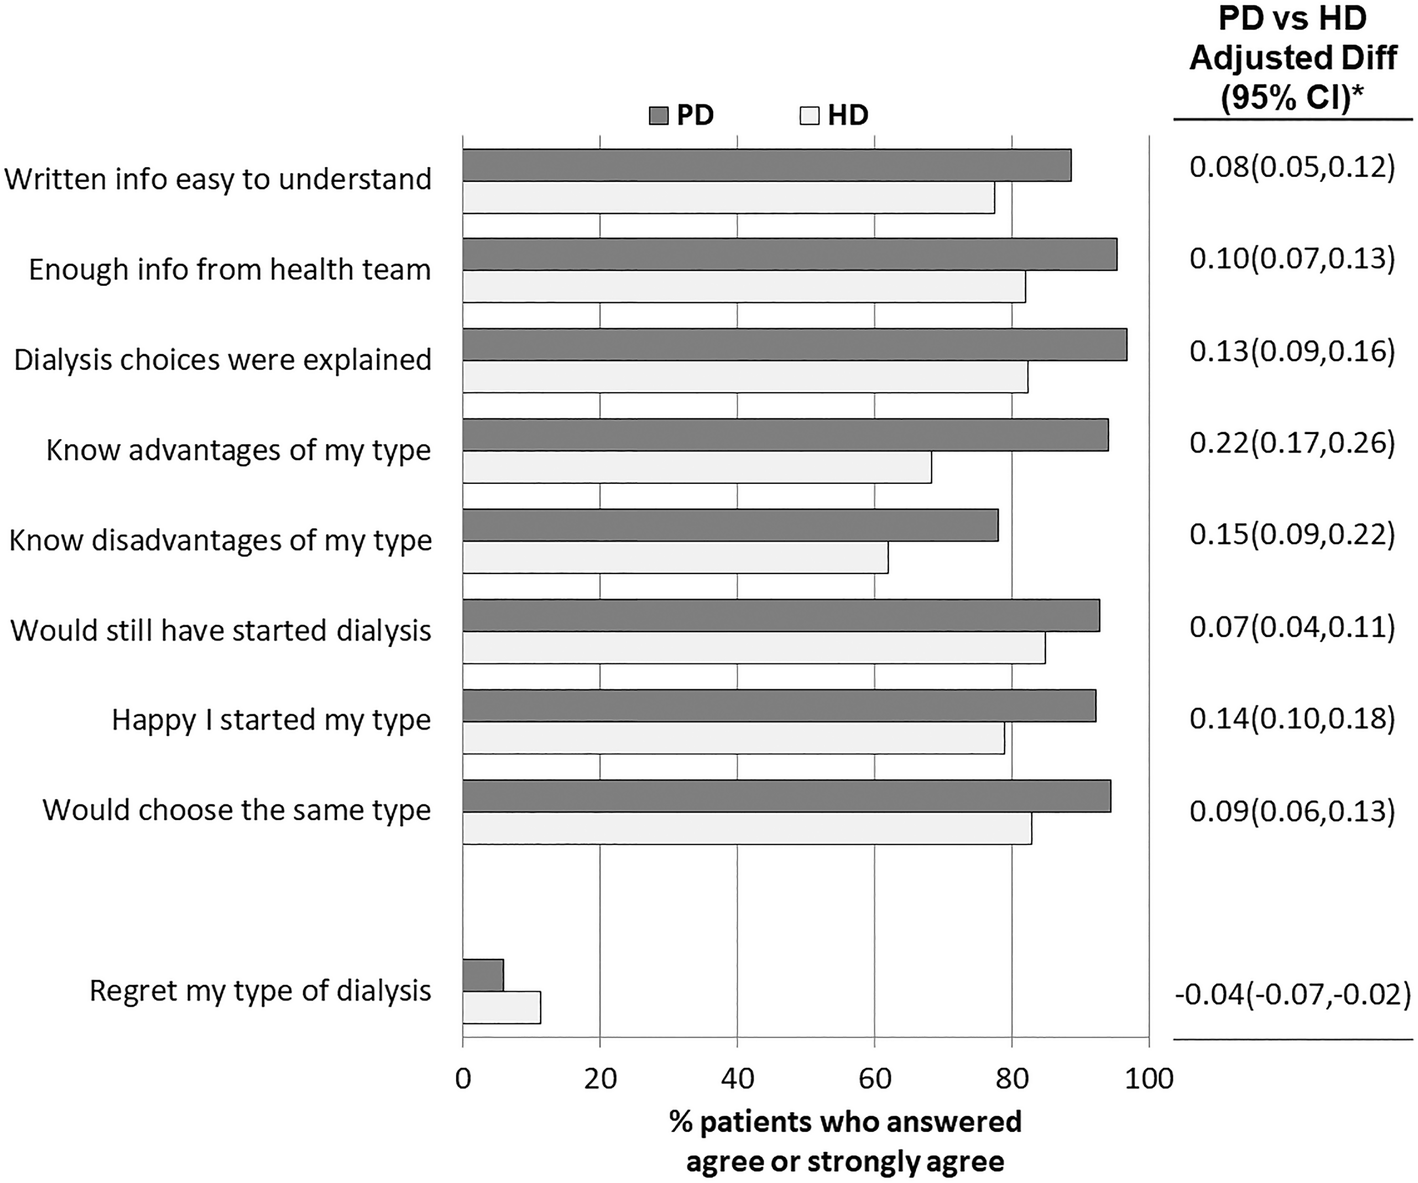 Perceptions about the dialysis modality decision process